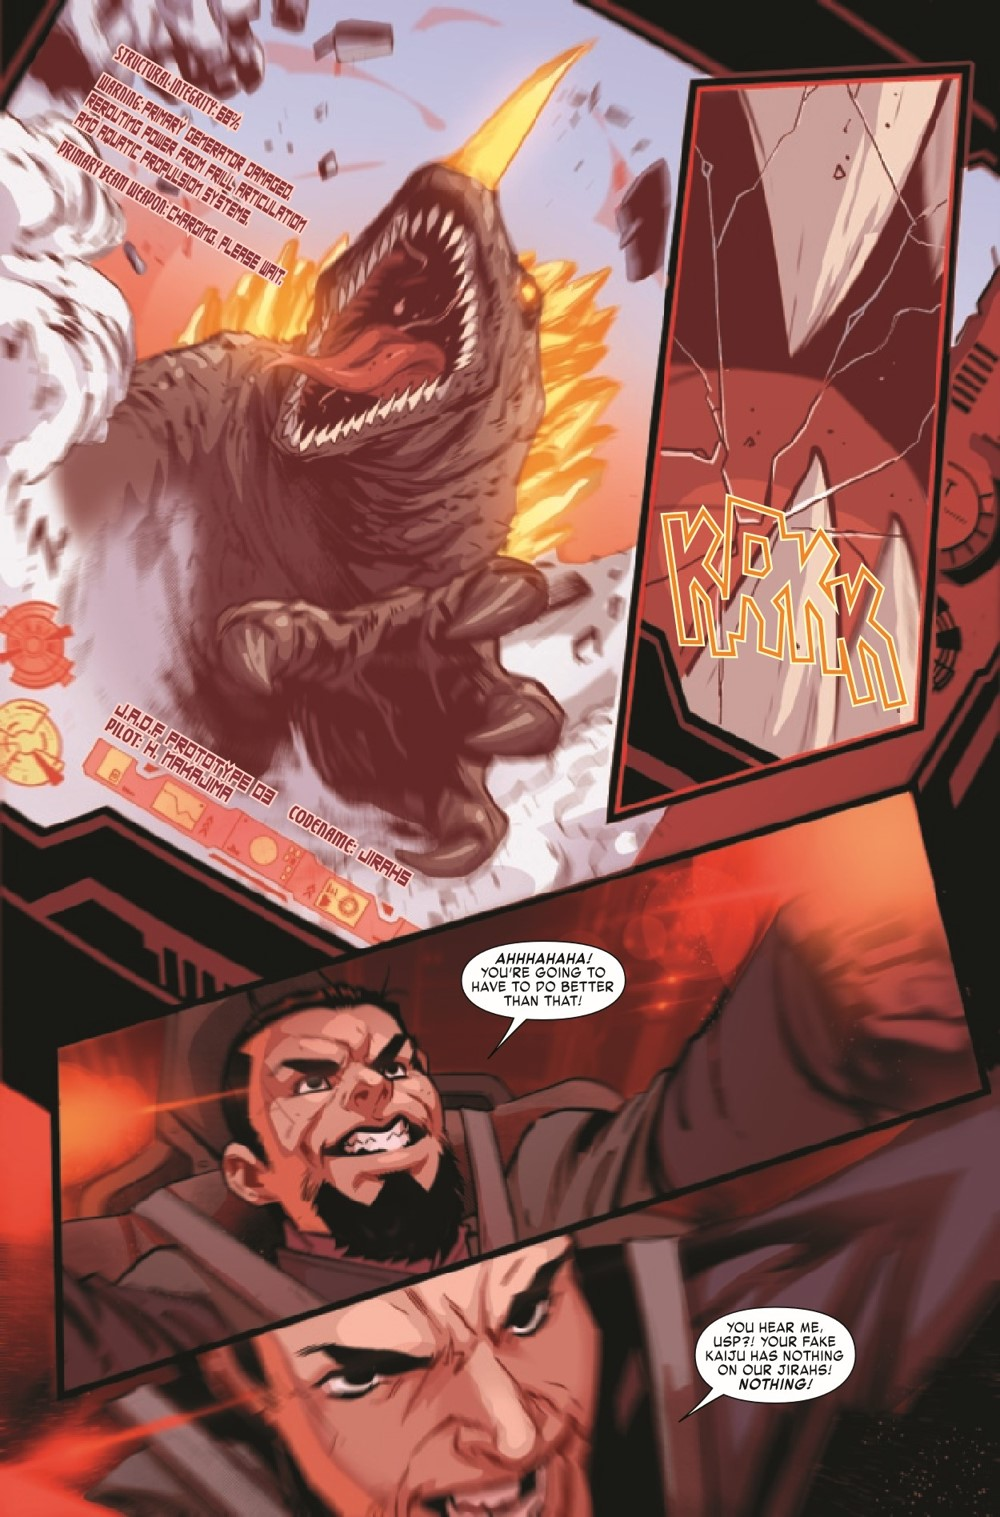 ULTRAMANTRIALS2021005_Preview-3 ComicList Previews: THE TRIALS OF ULTRAMAN #5 (OF 5)